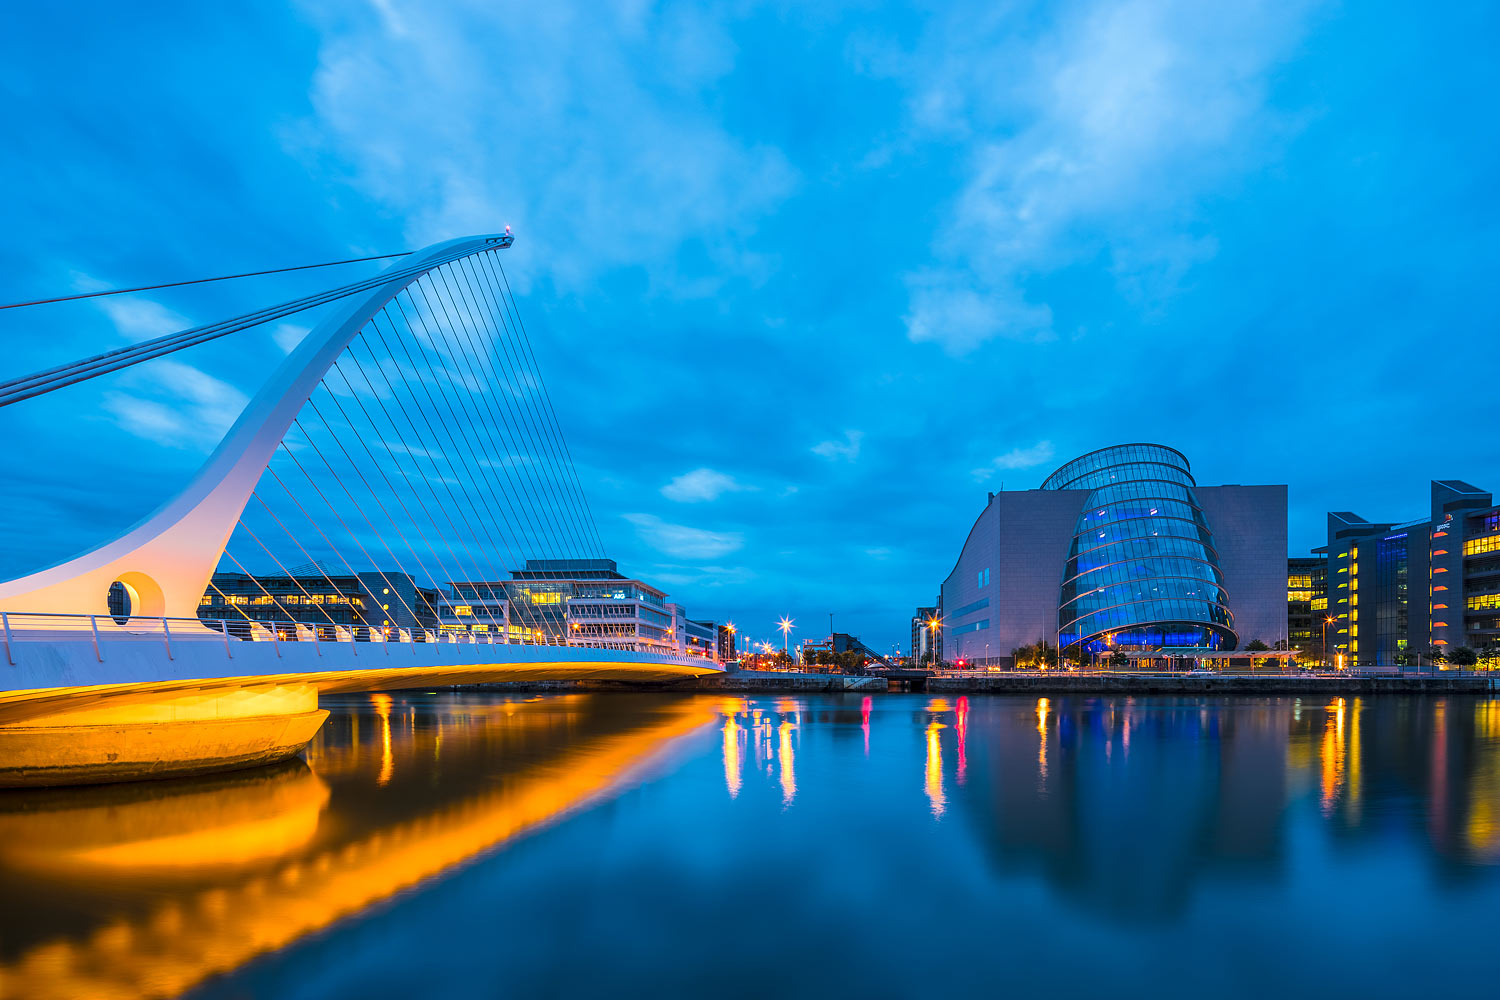 Dublin Skyline with the Samuel Beckett Bridge and the River Liffey, Ireland